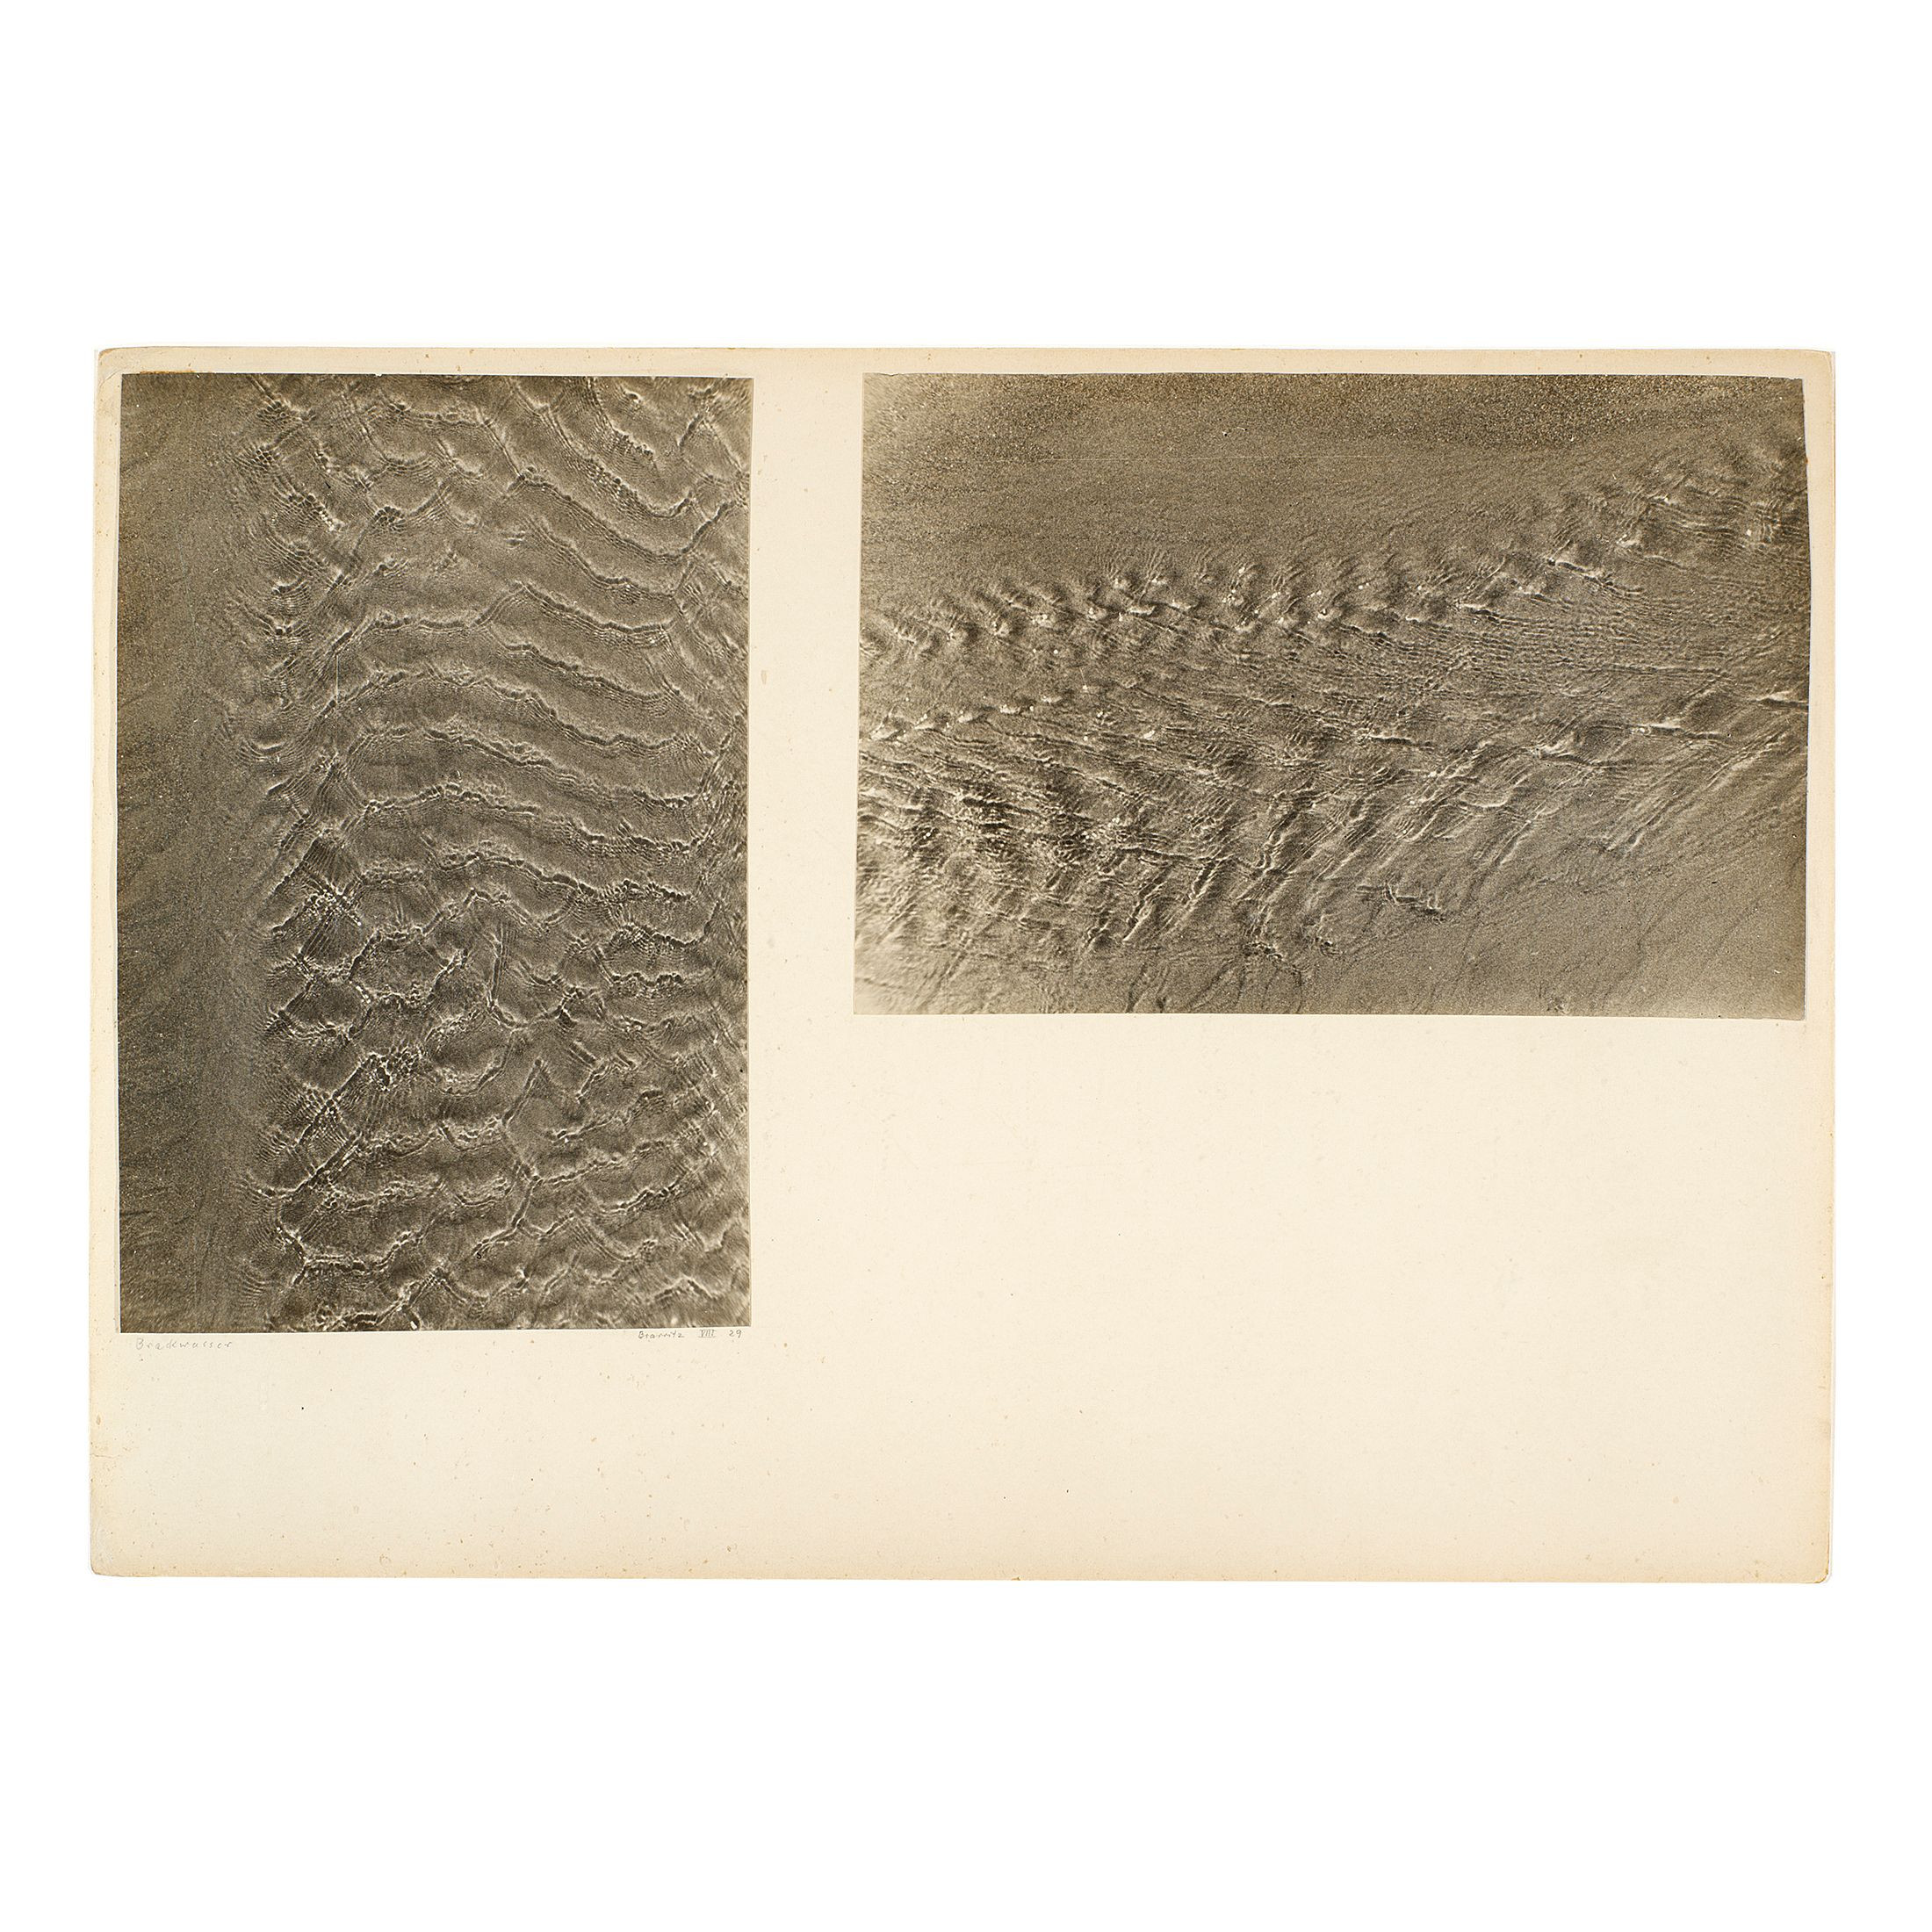 Josef Albers, Brackwasser Biarritz VIII '29, 1929. Gelatin silver prints mounted on cardboard. © 2020 The Josef and Anni Albers Foundation/ARS, NY/DACS